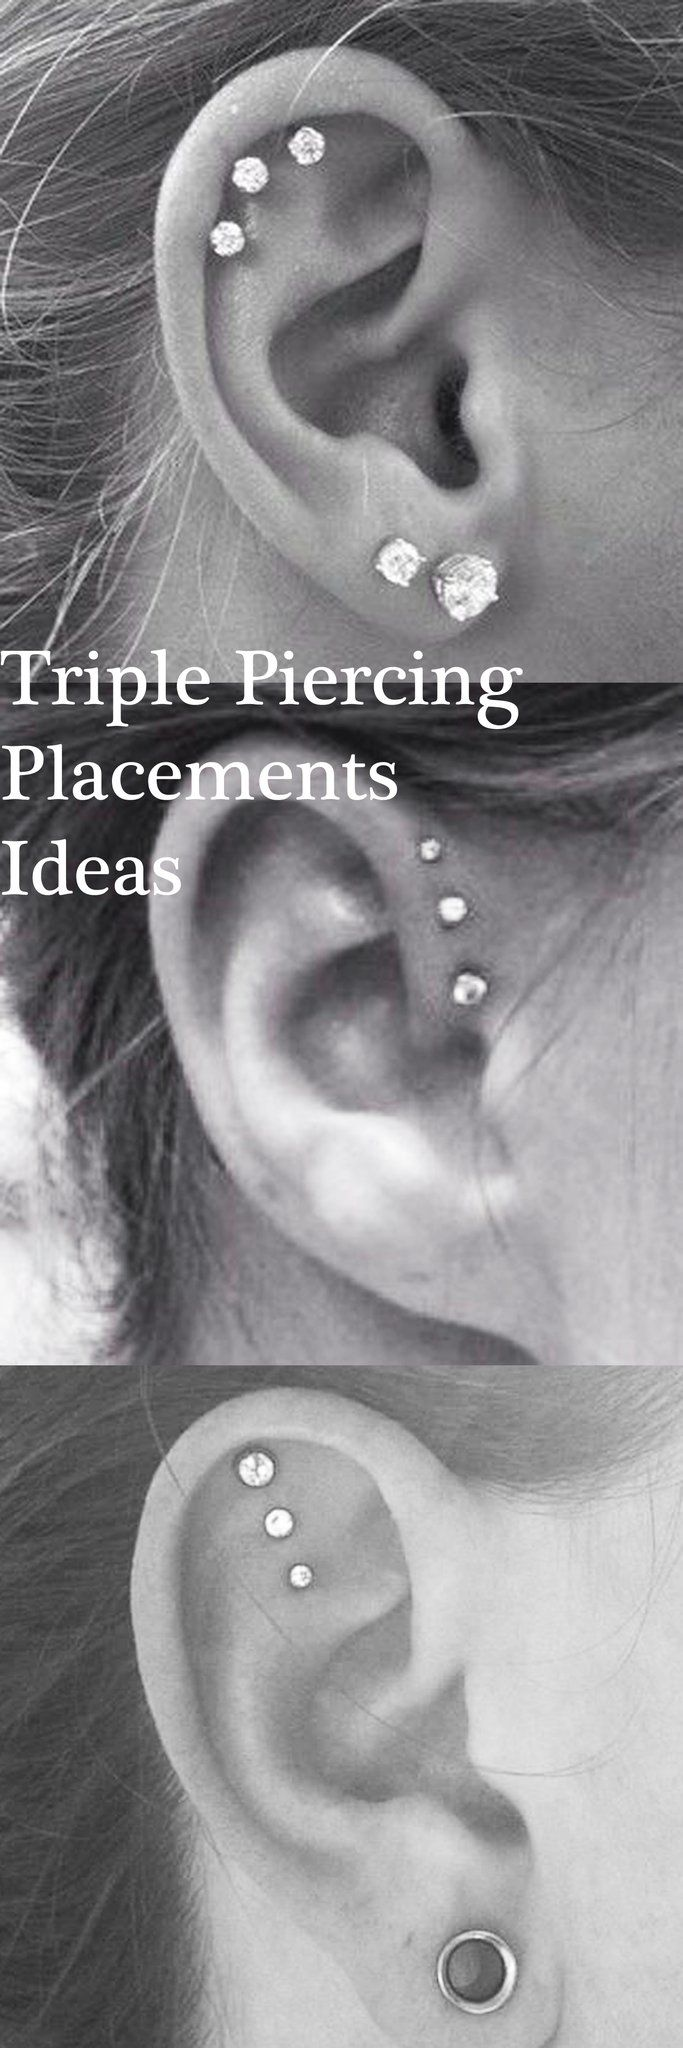 25+ cute Ear piercings ideas on Pinterest | Ear peircings ...